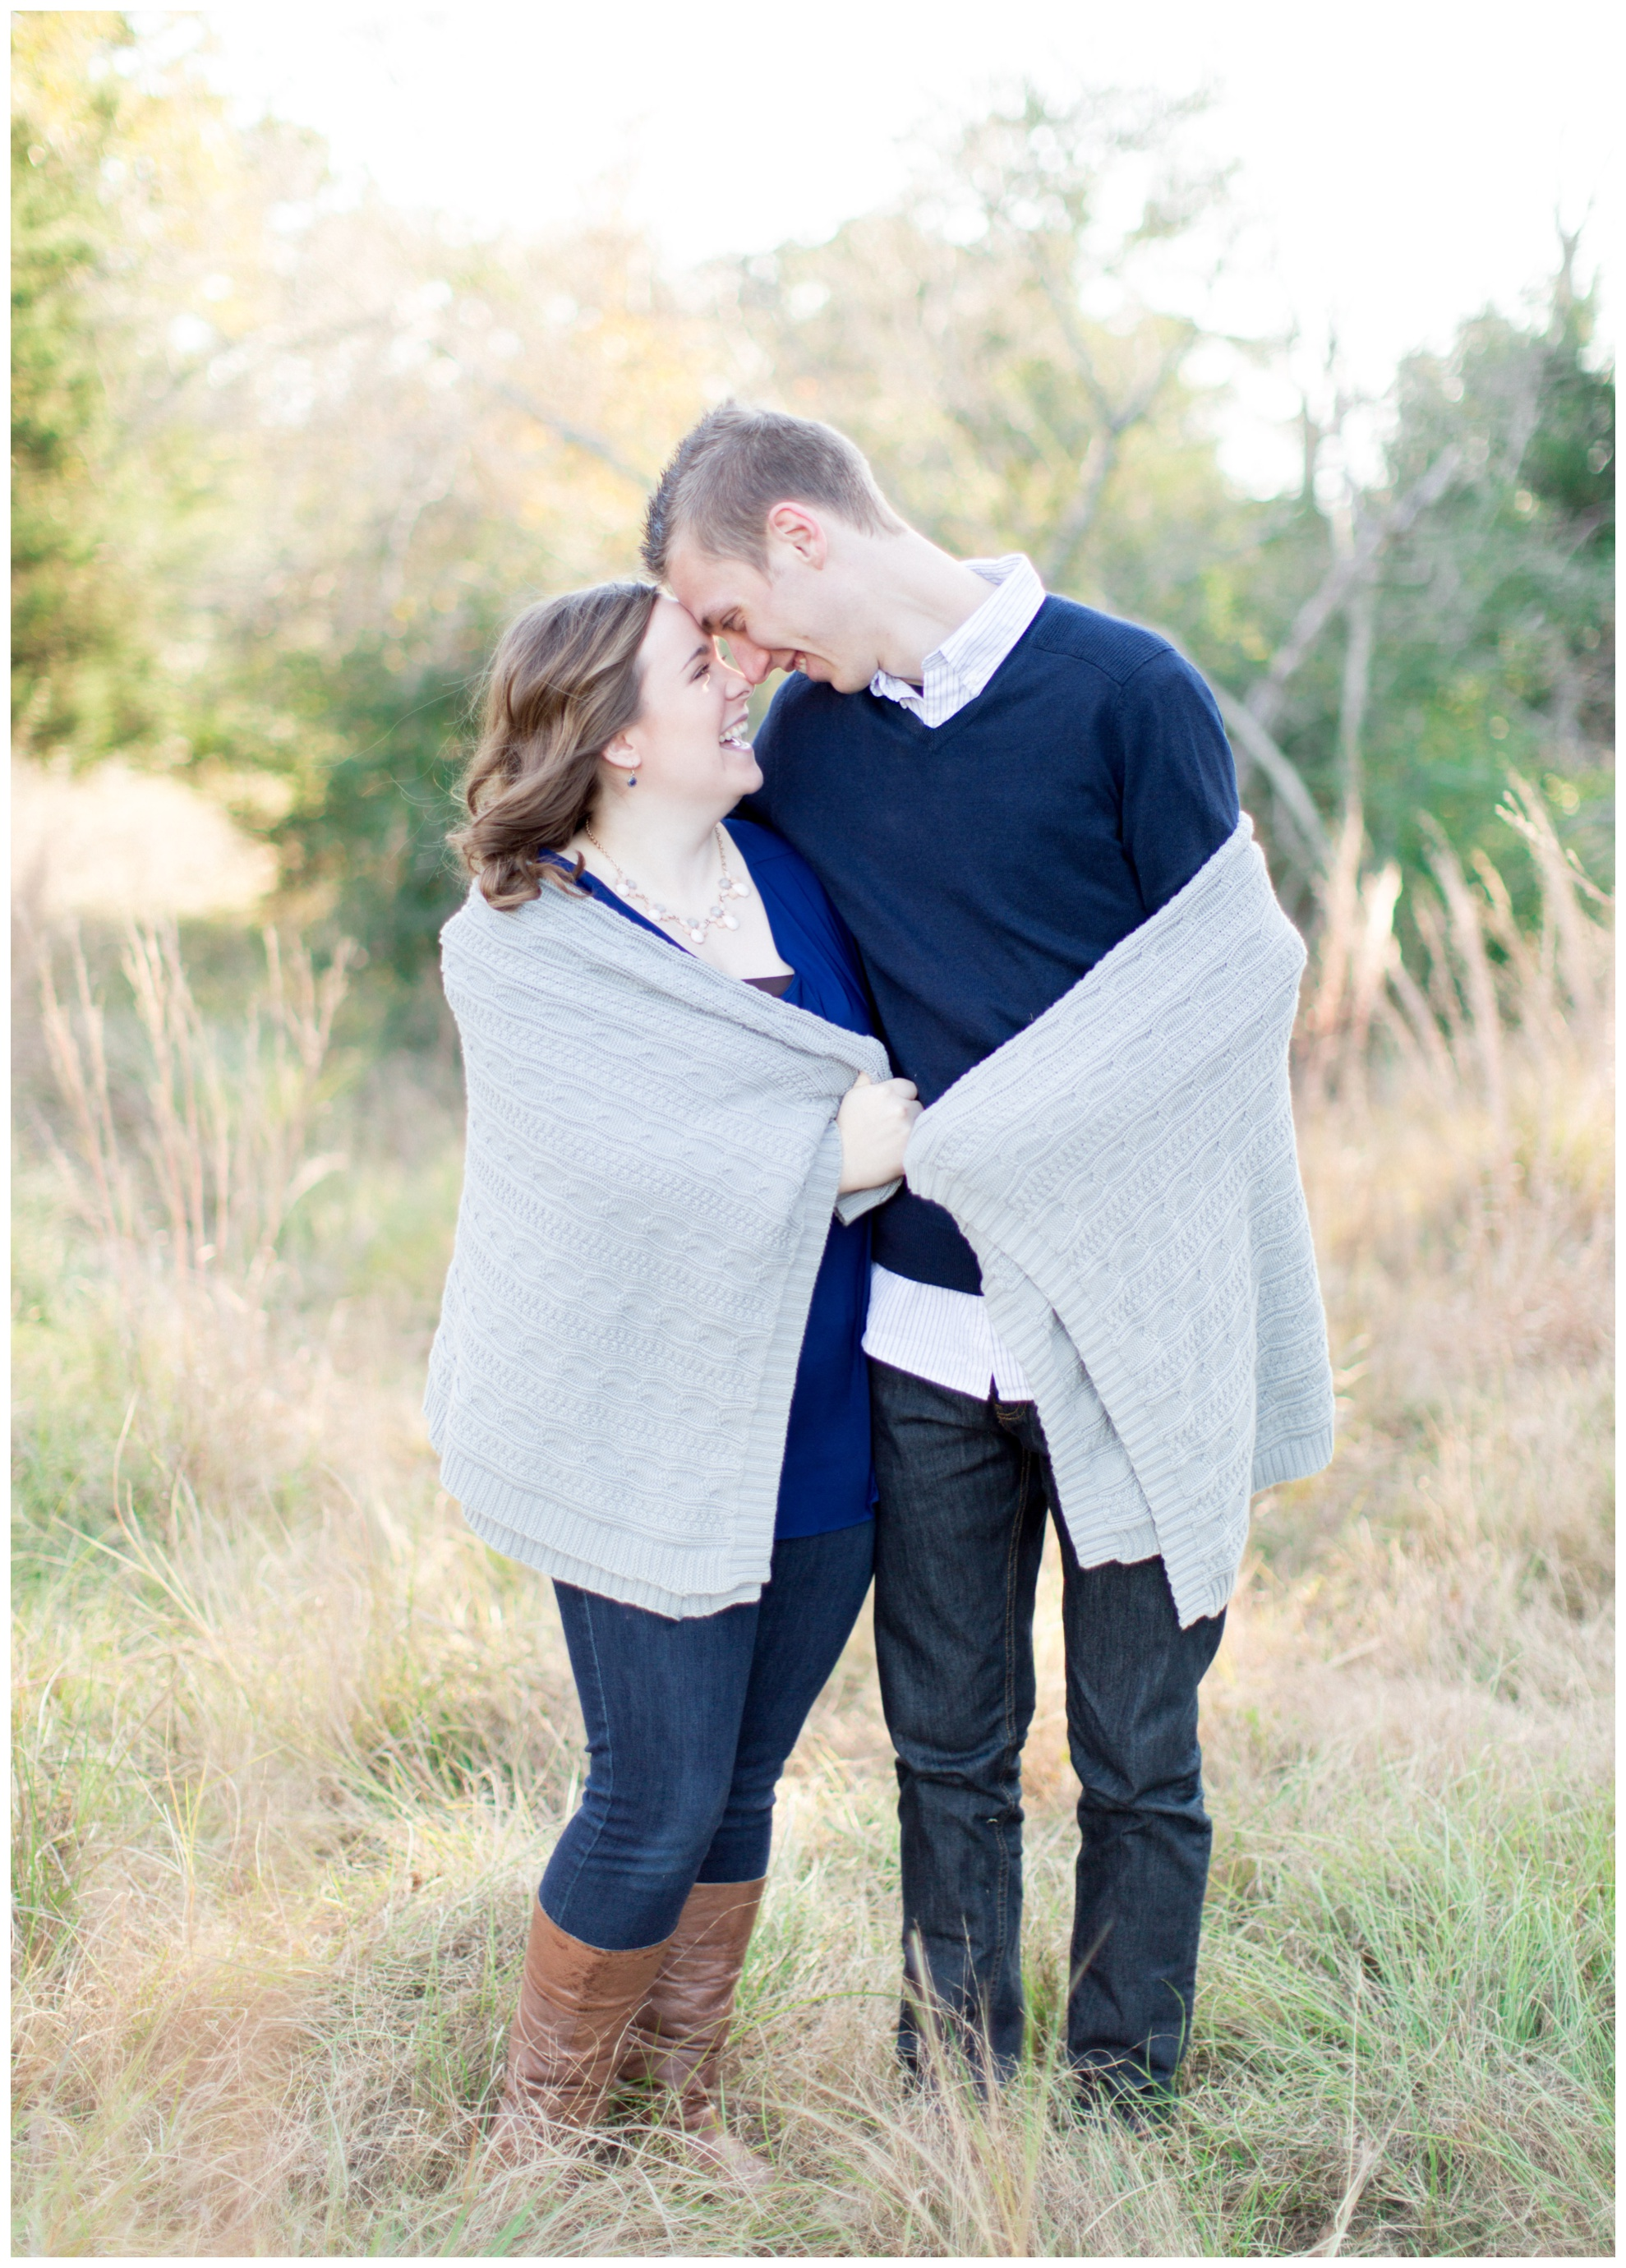 Sarah Best Photography - Claire & David - Engagement Photography-2_STP.jpg